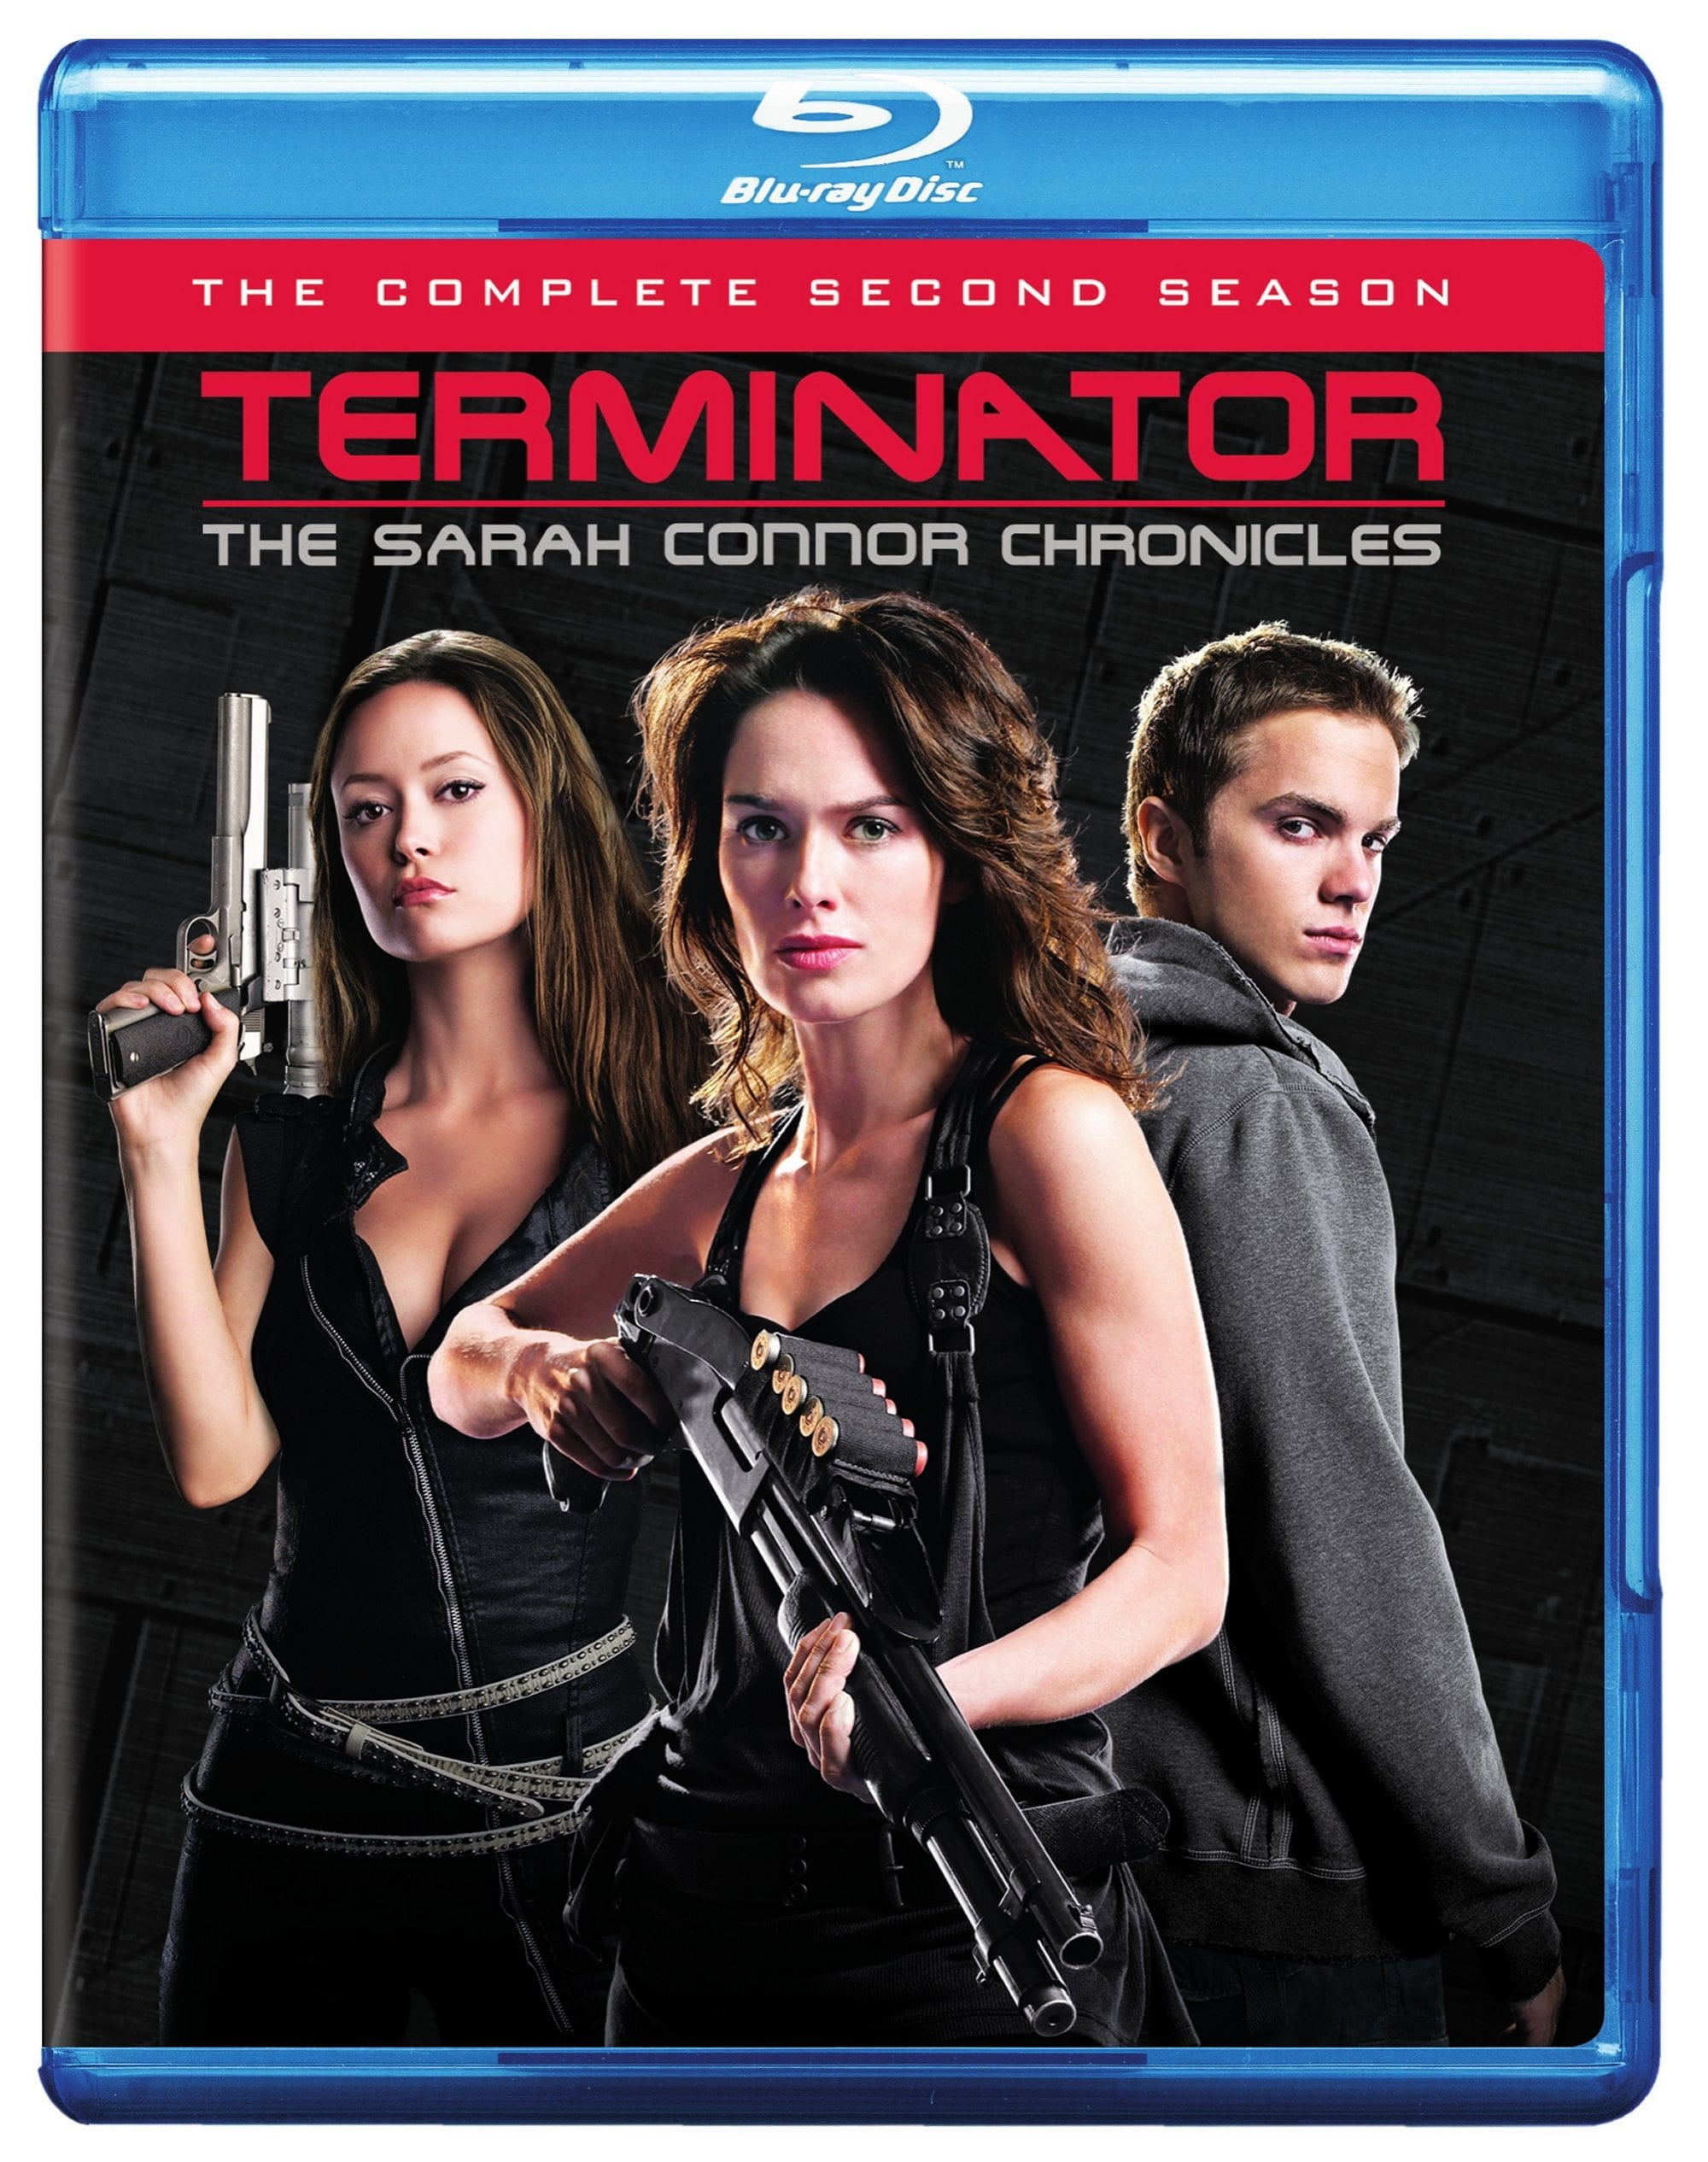 Terminator: The Sarah Connor Chronicles Complete Second Season (Blu-ray Disc)